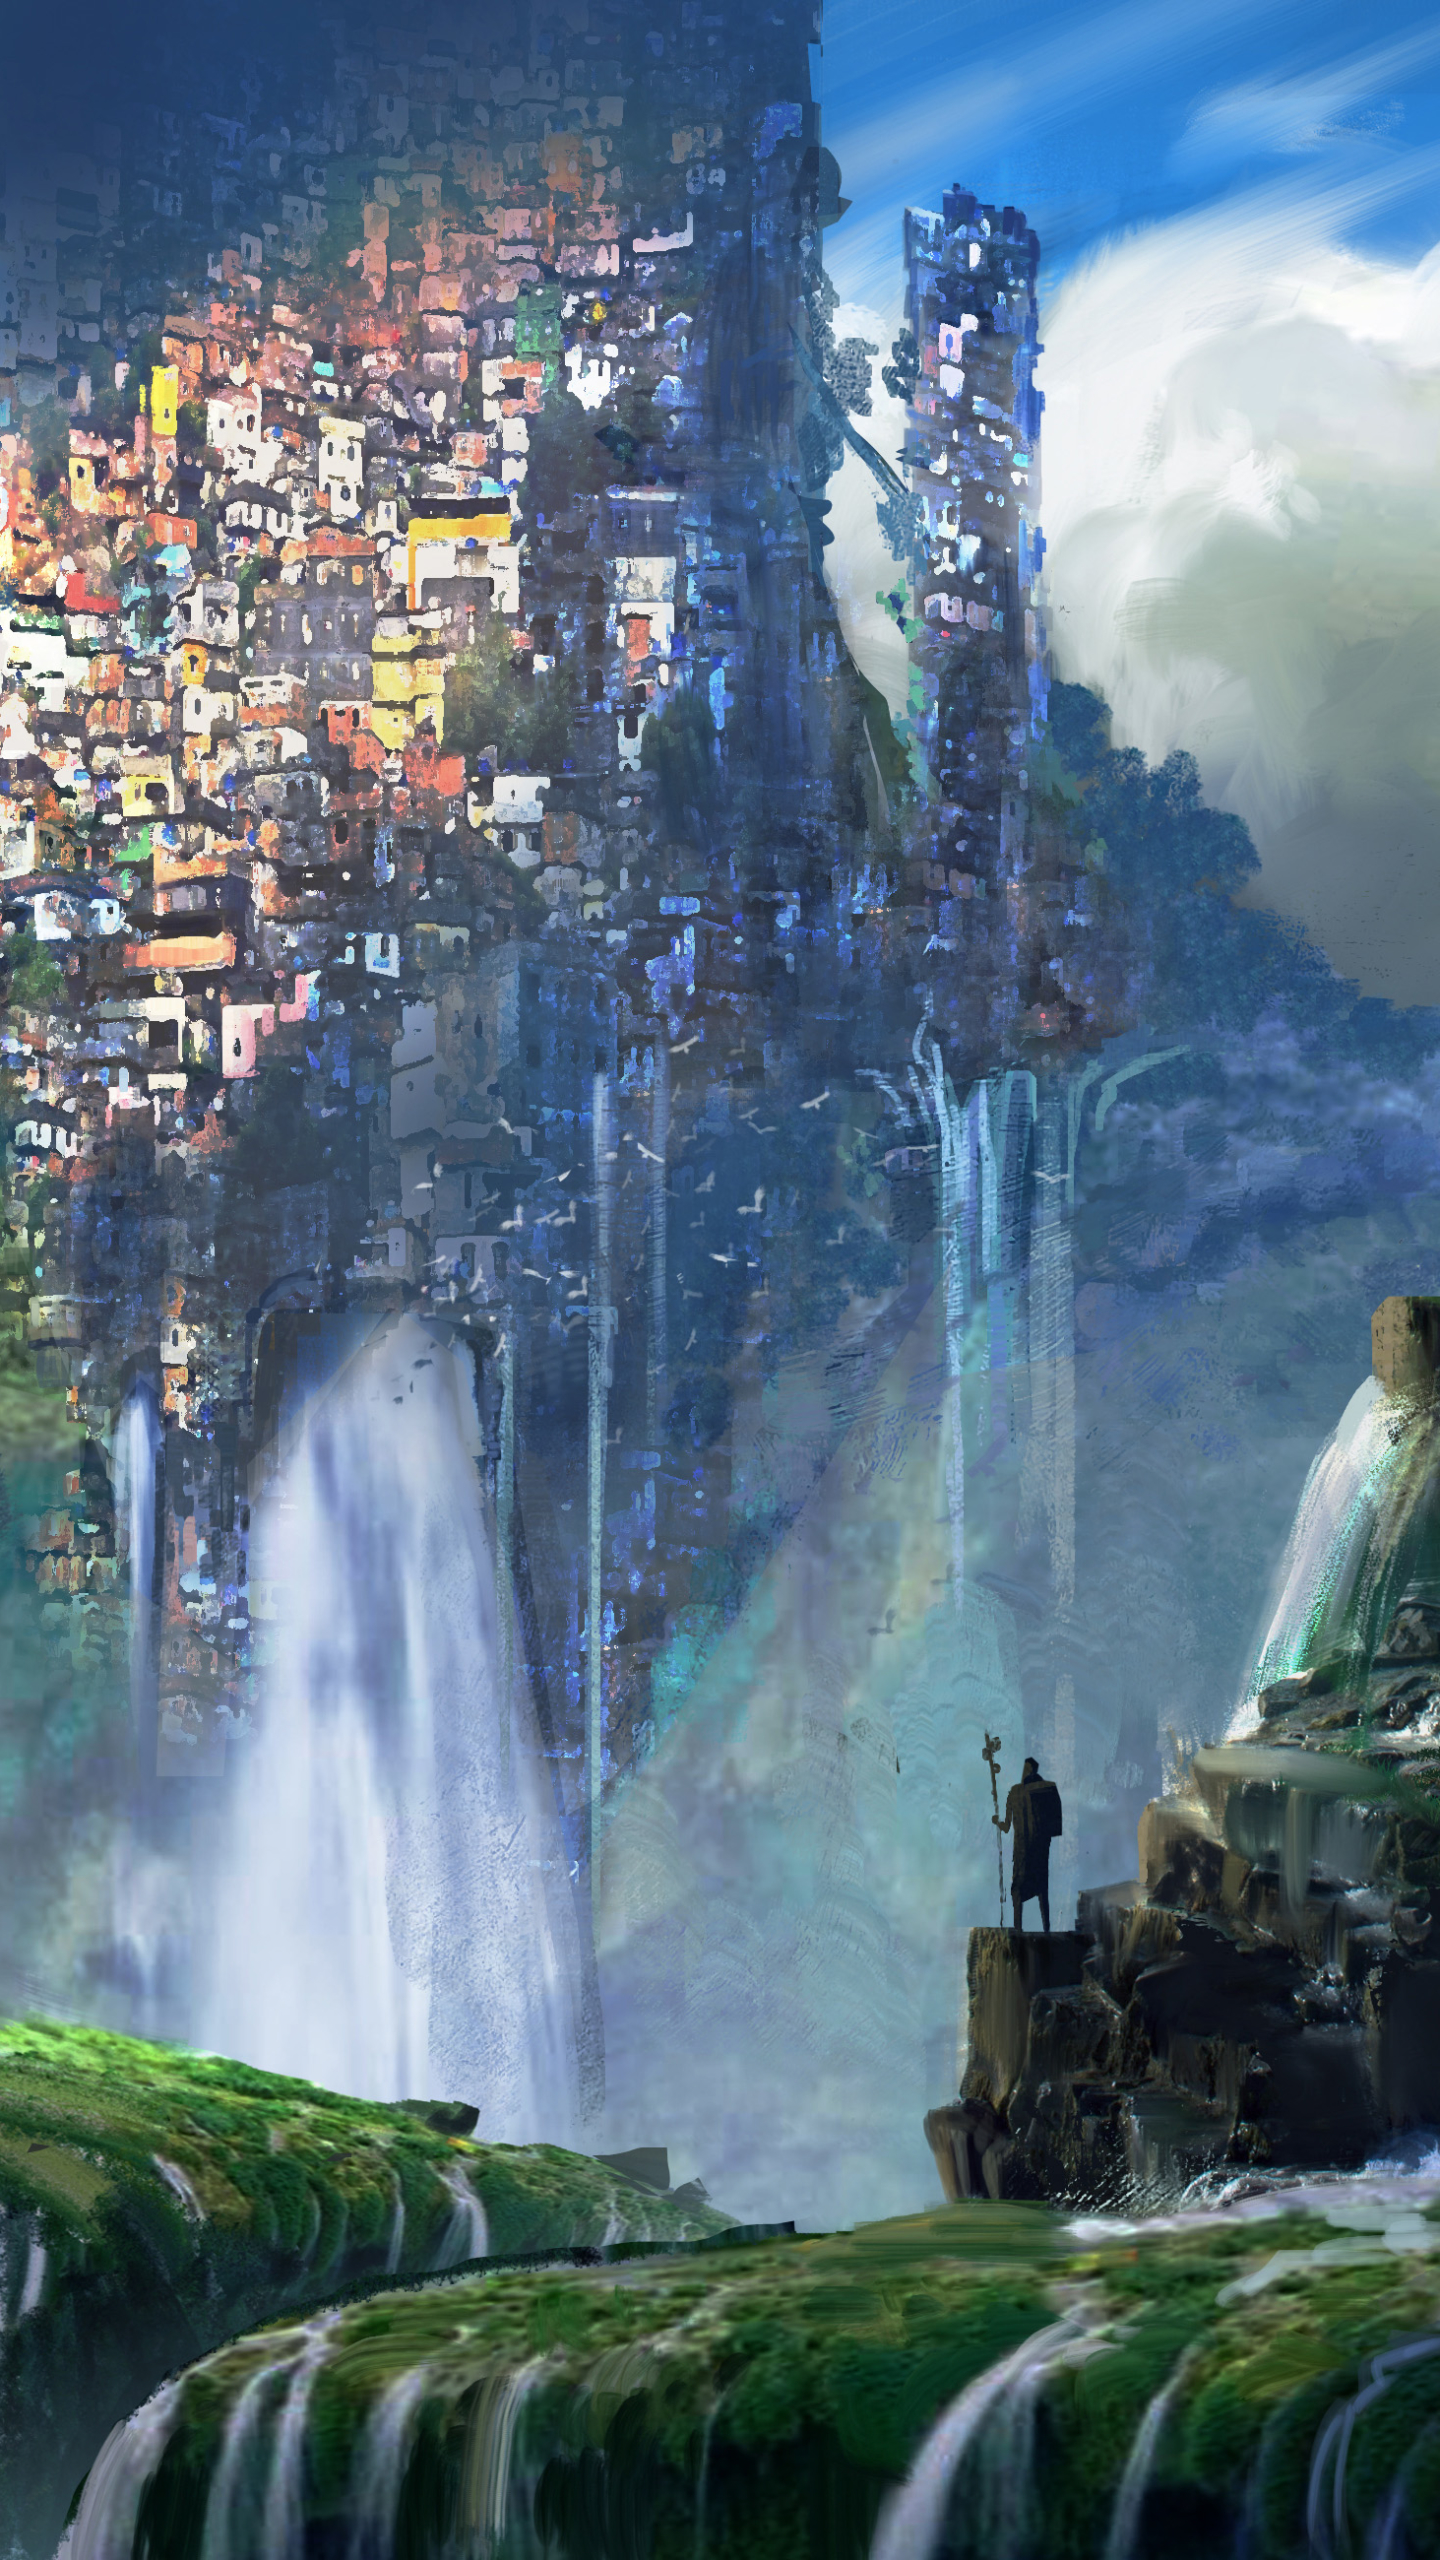 Cool Wallpapers Water Fall Fantasy City 1440x2560 Wallpaper Id 710462 Mobile Abyss